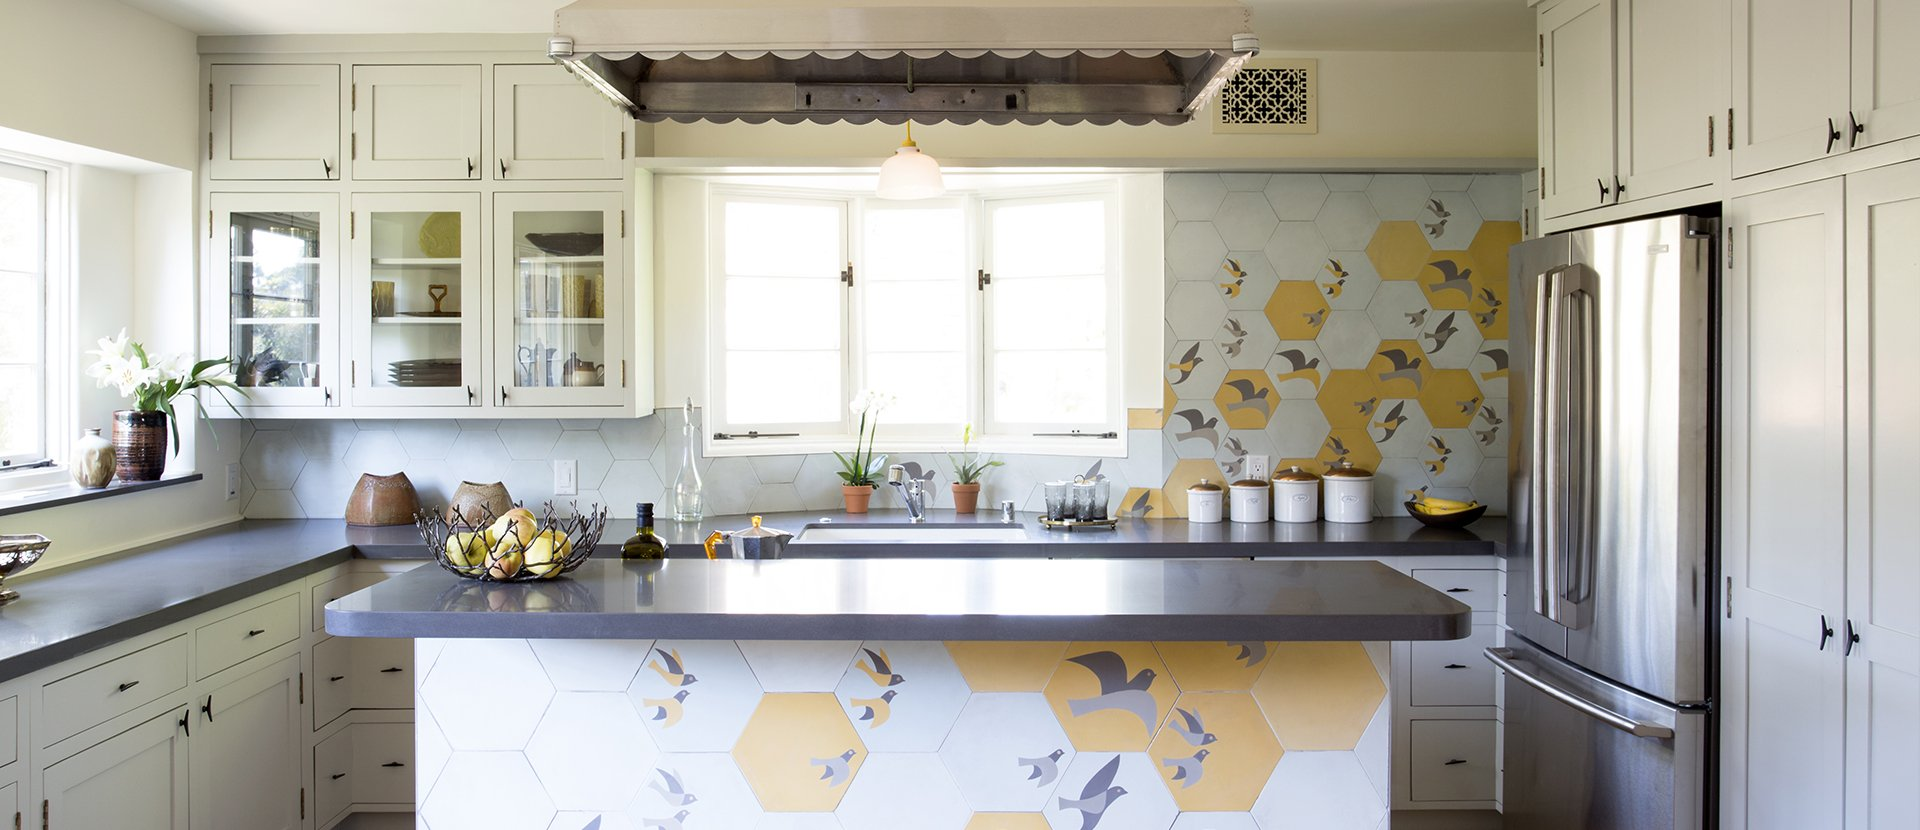 004-panorama-terrace-kitchen-bird-tile-mural-kitchen-island-design-vuelo-cement-hexagon-tile-design-vidal-mystical-journey-collection-custom-hood